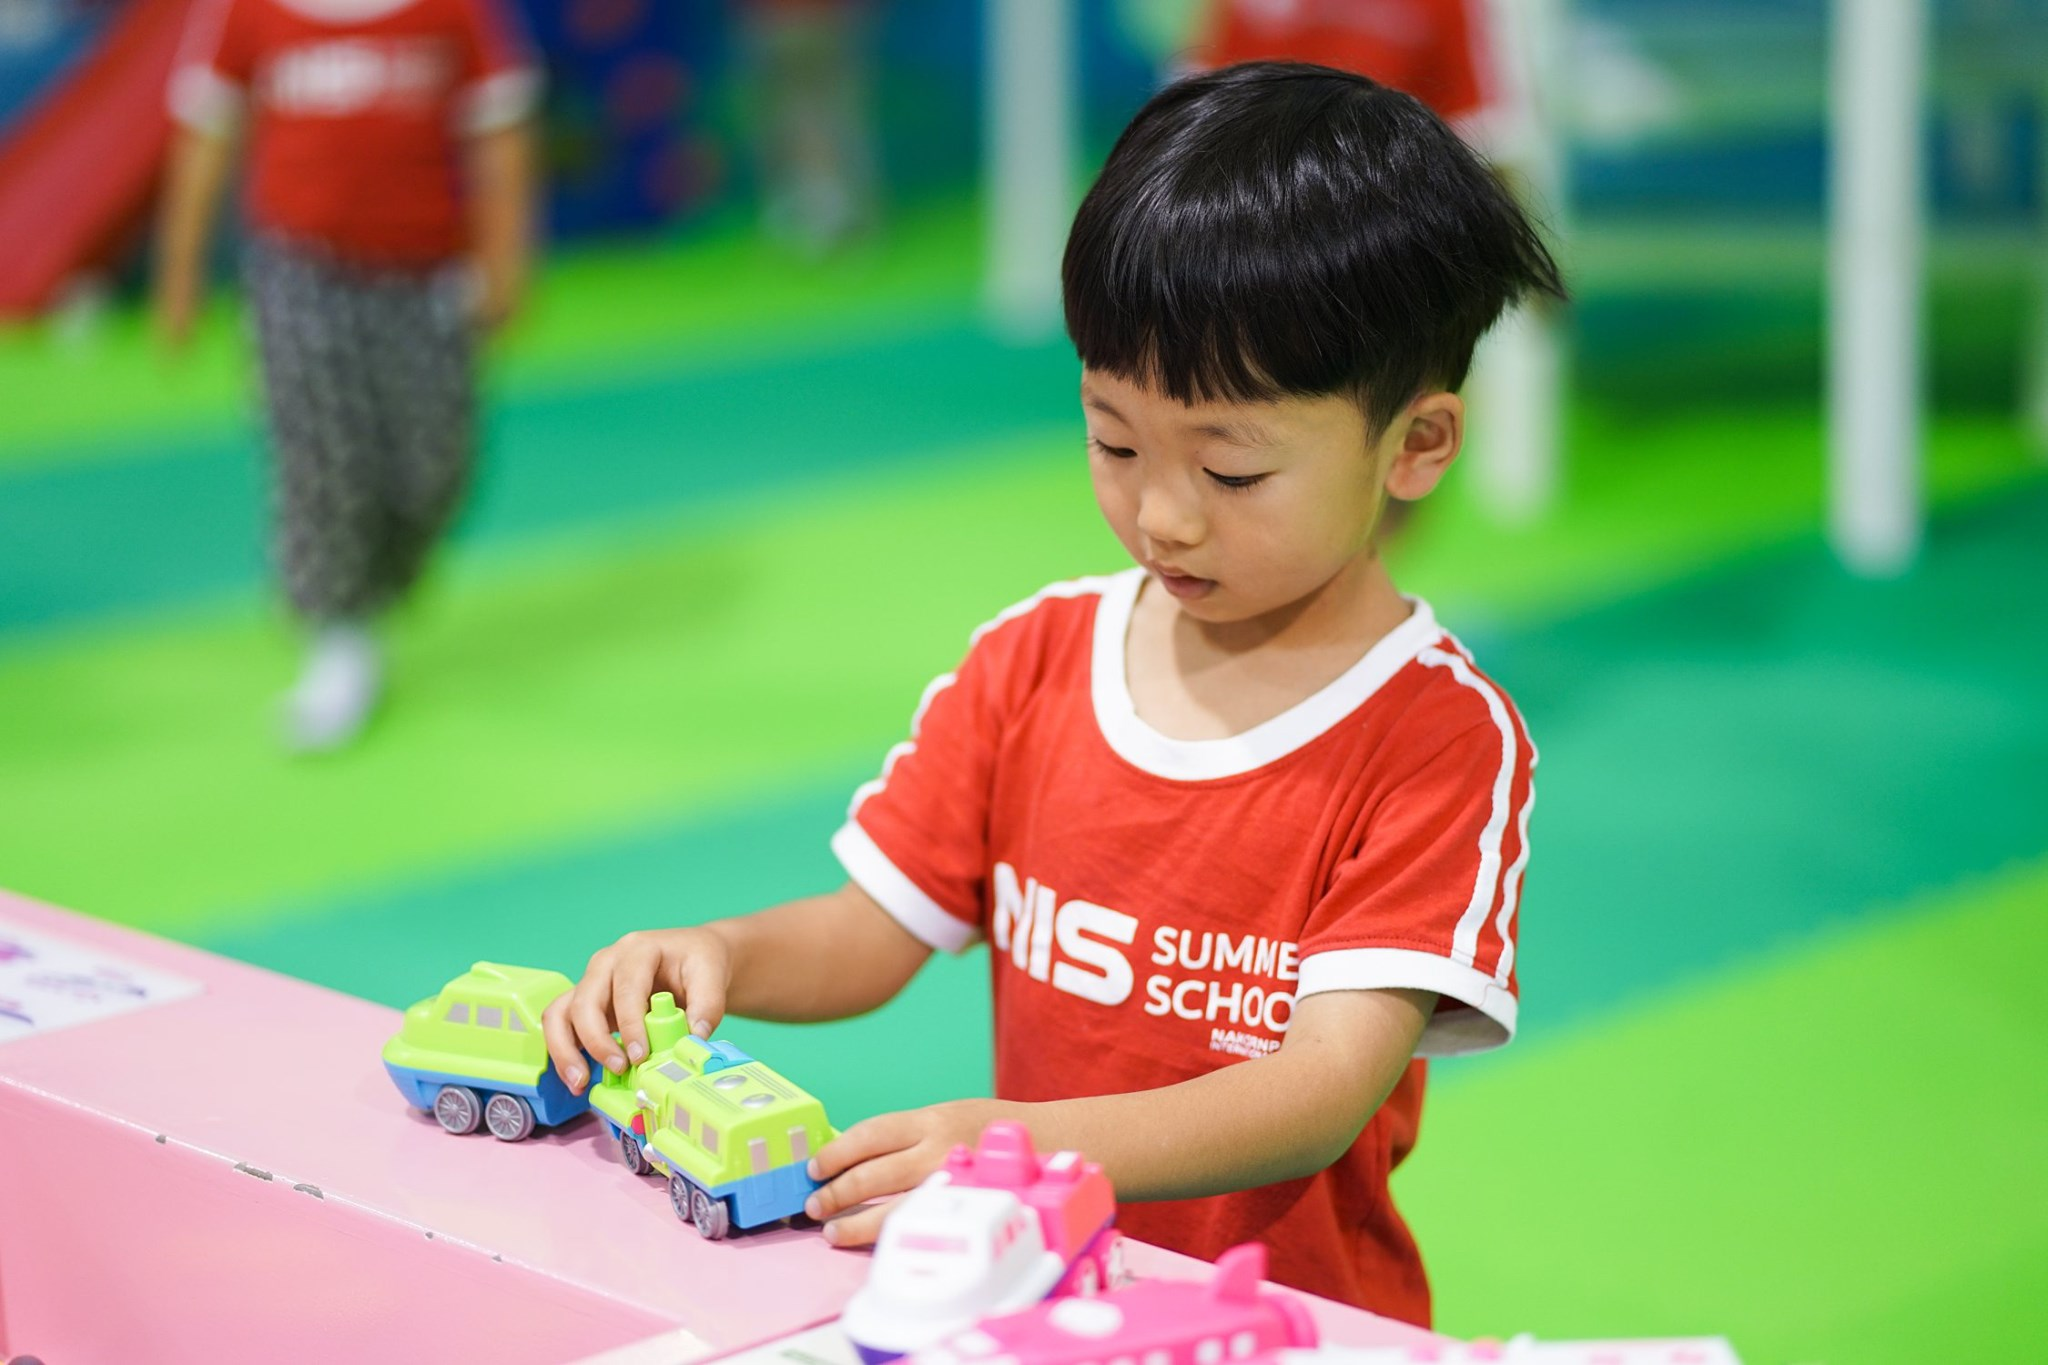 NIS-Summer-School-2019-Day-Kiddy-Land-52